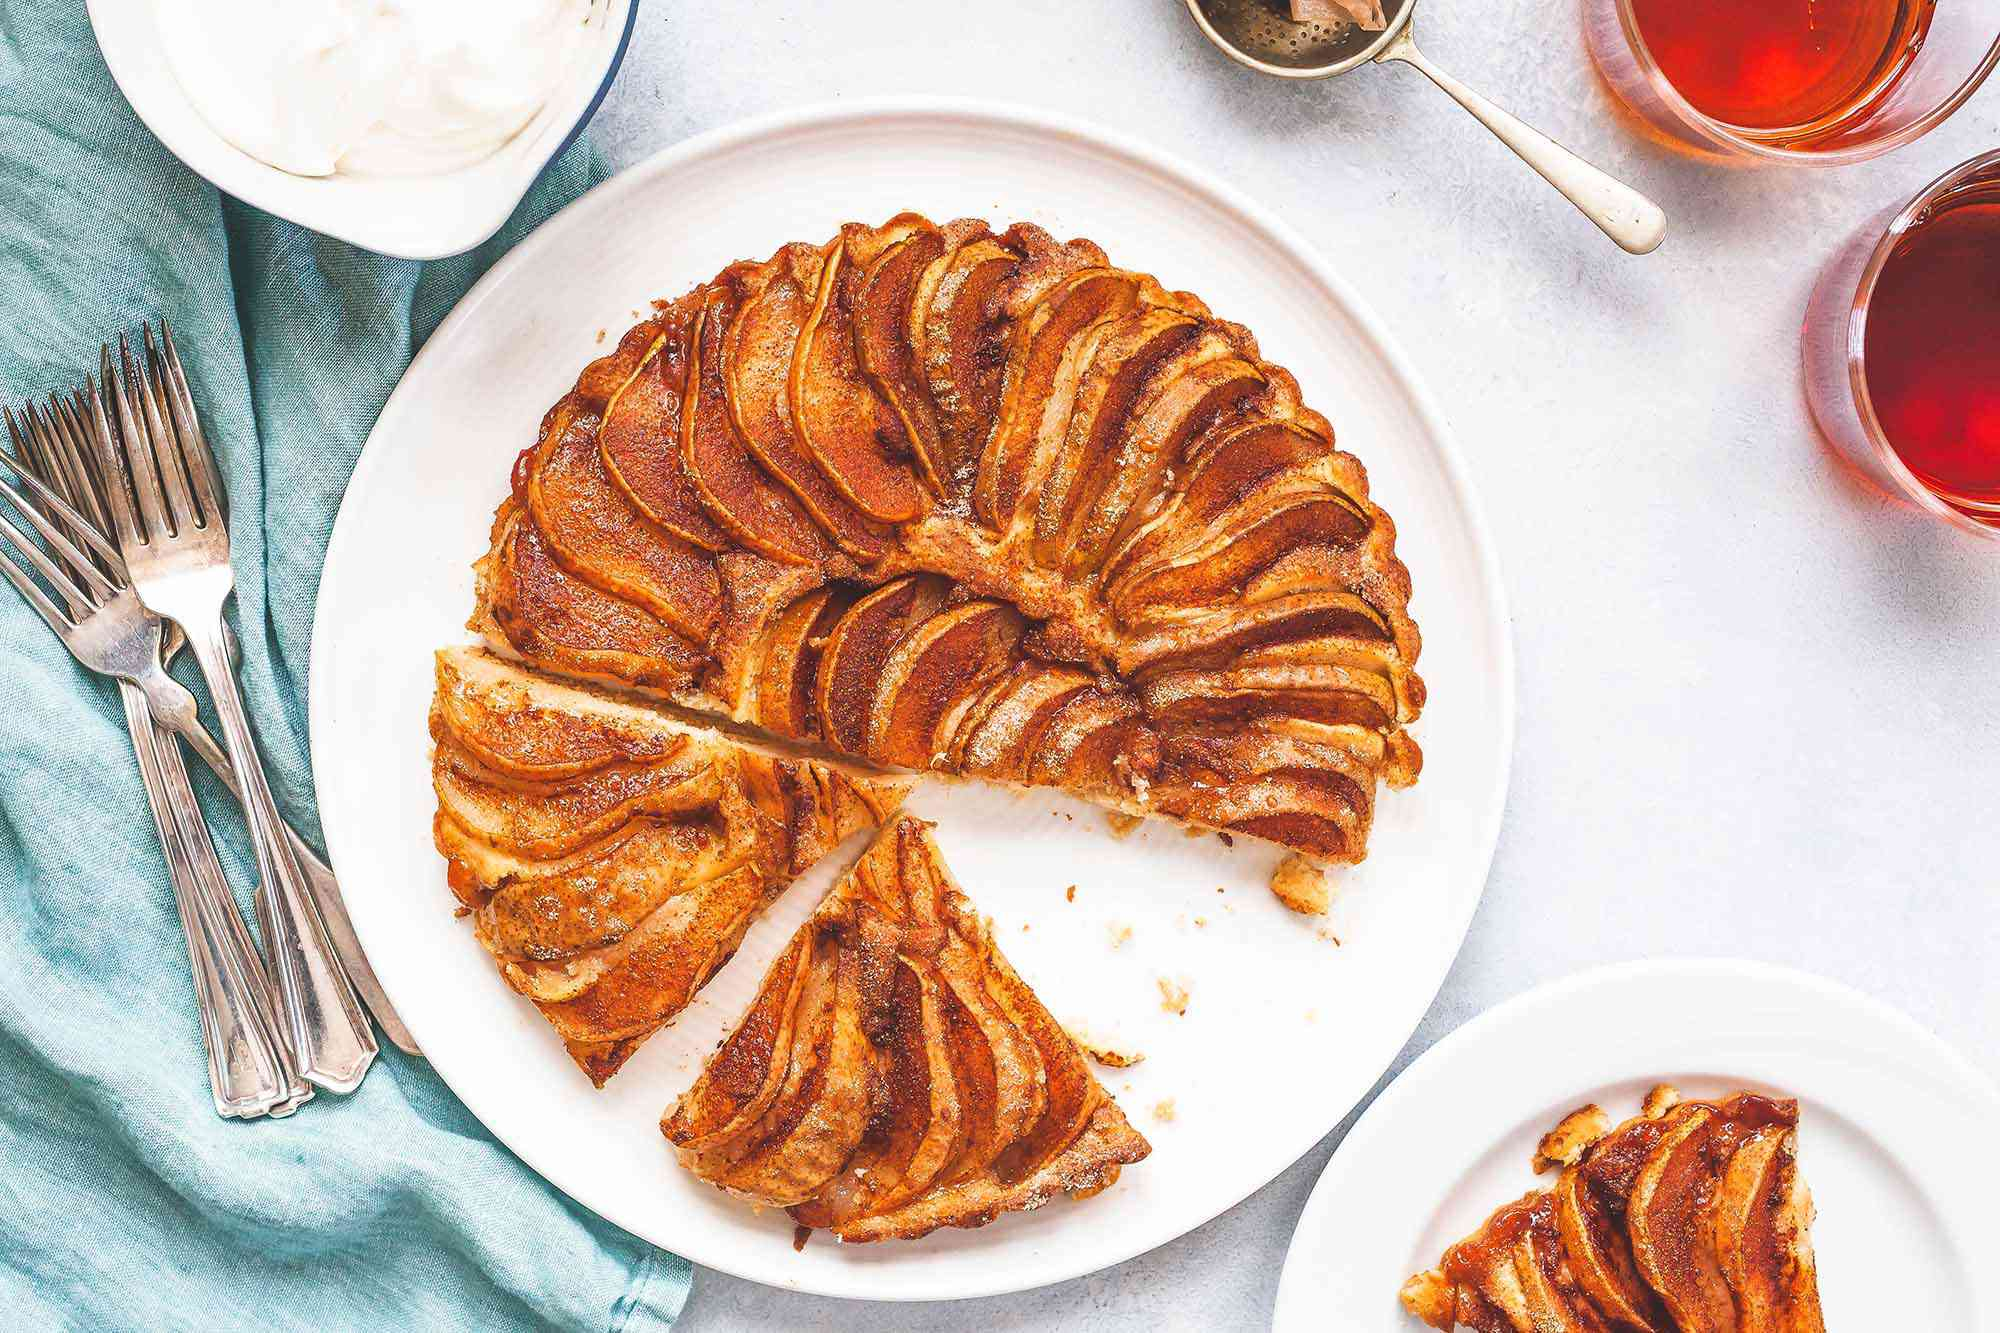 Pear cake with slices out on a plate.